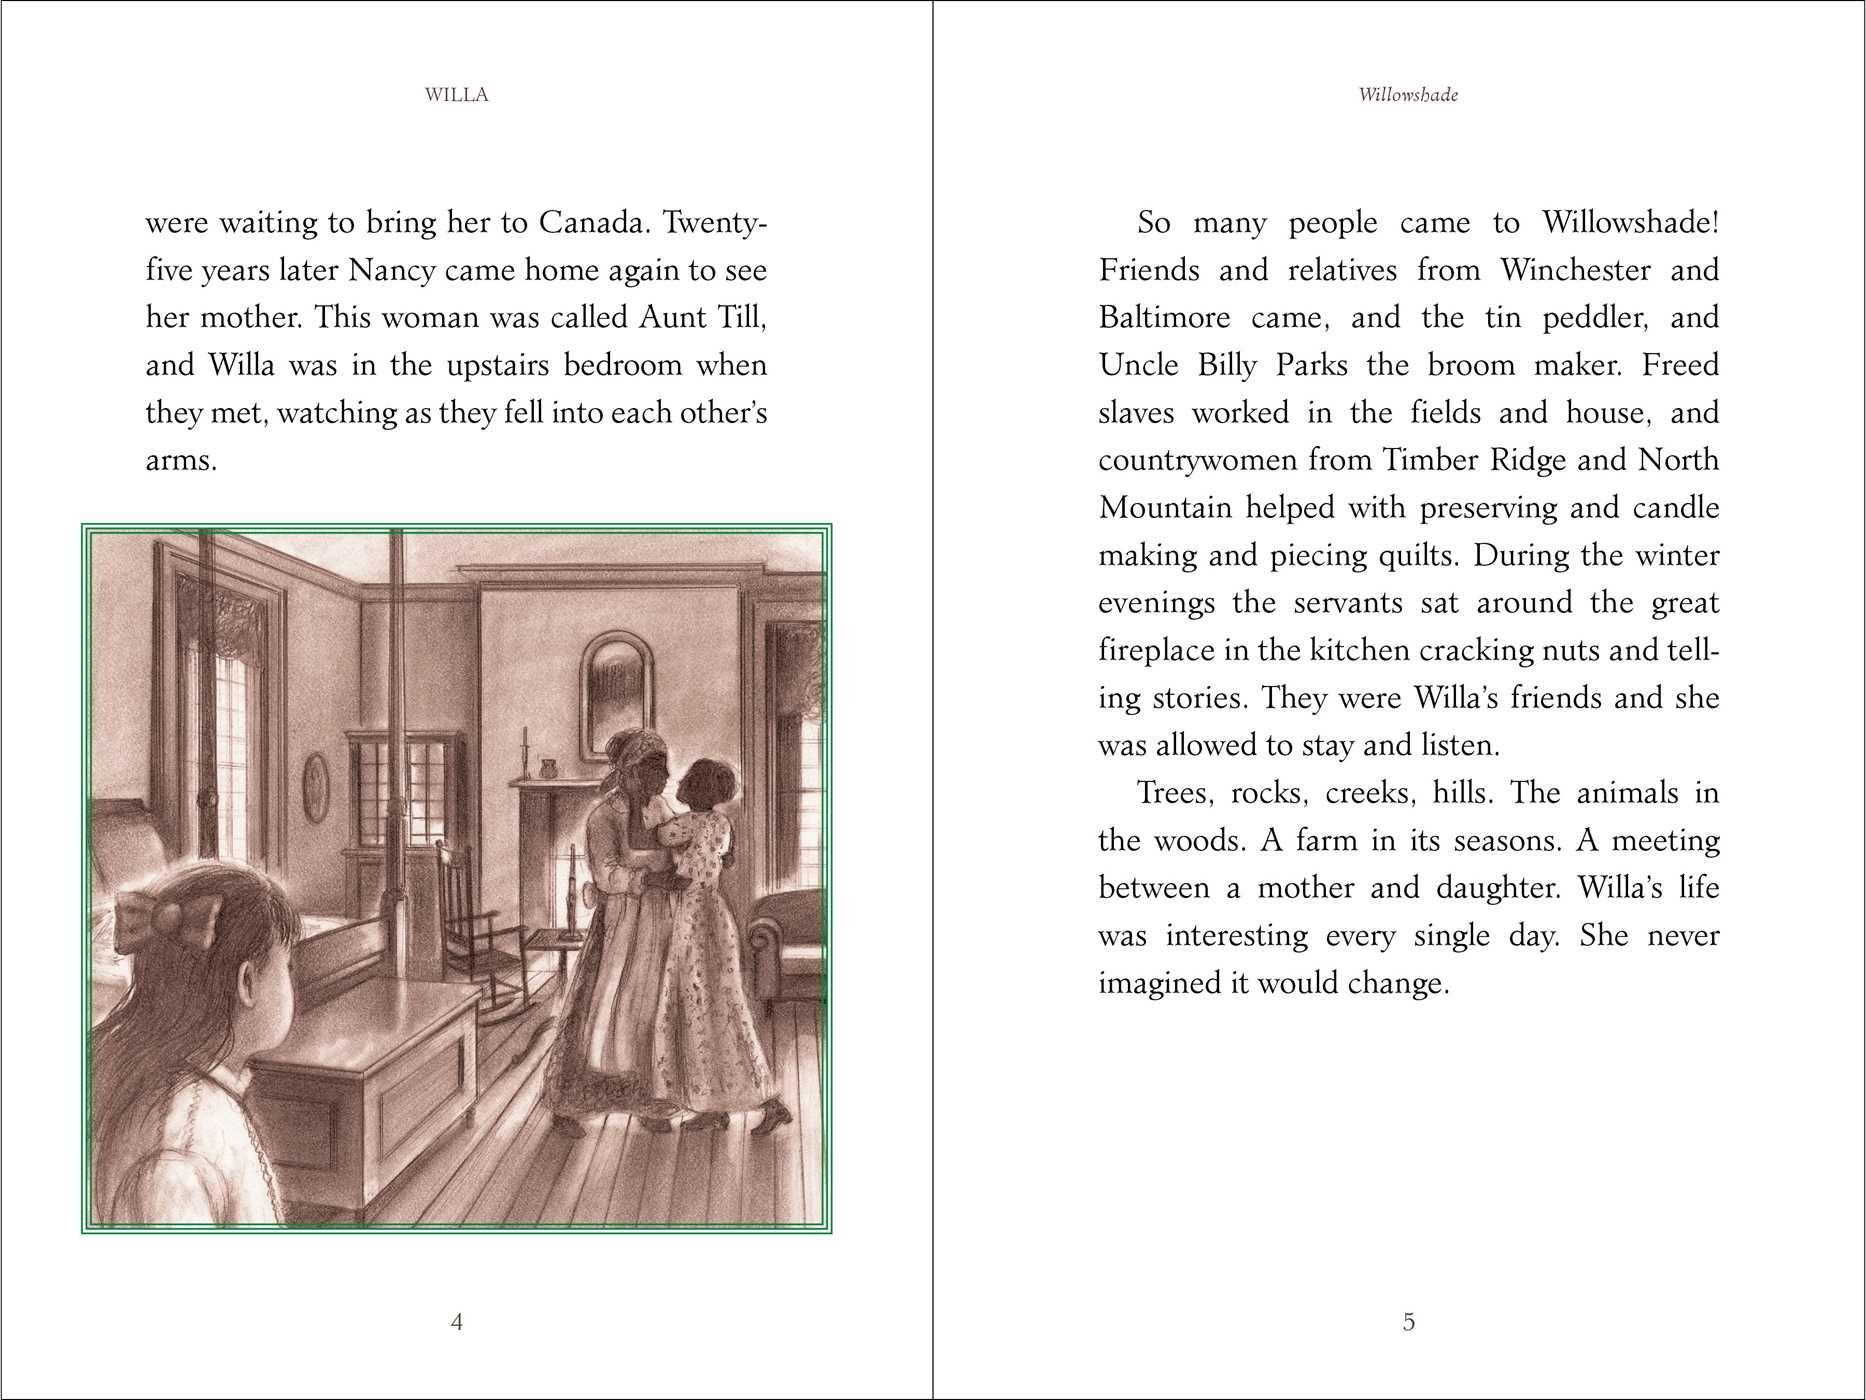 Willa: The Story of Willa Cather, an American Writer (American Women Writers) by Simon Schuster Paula Wiseman Books (Image #4)